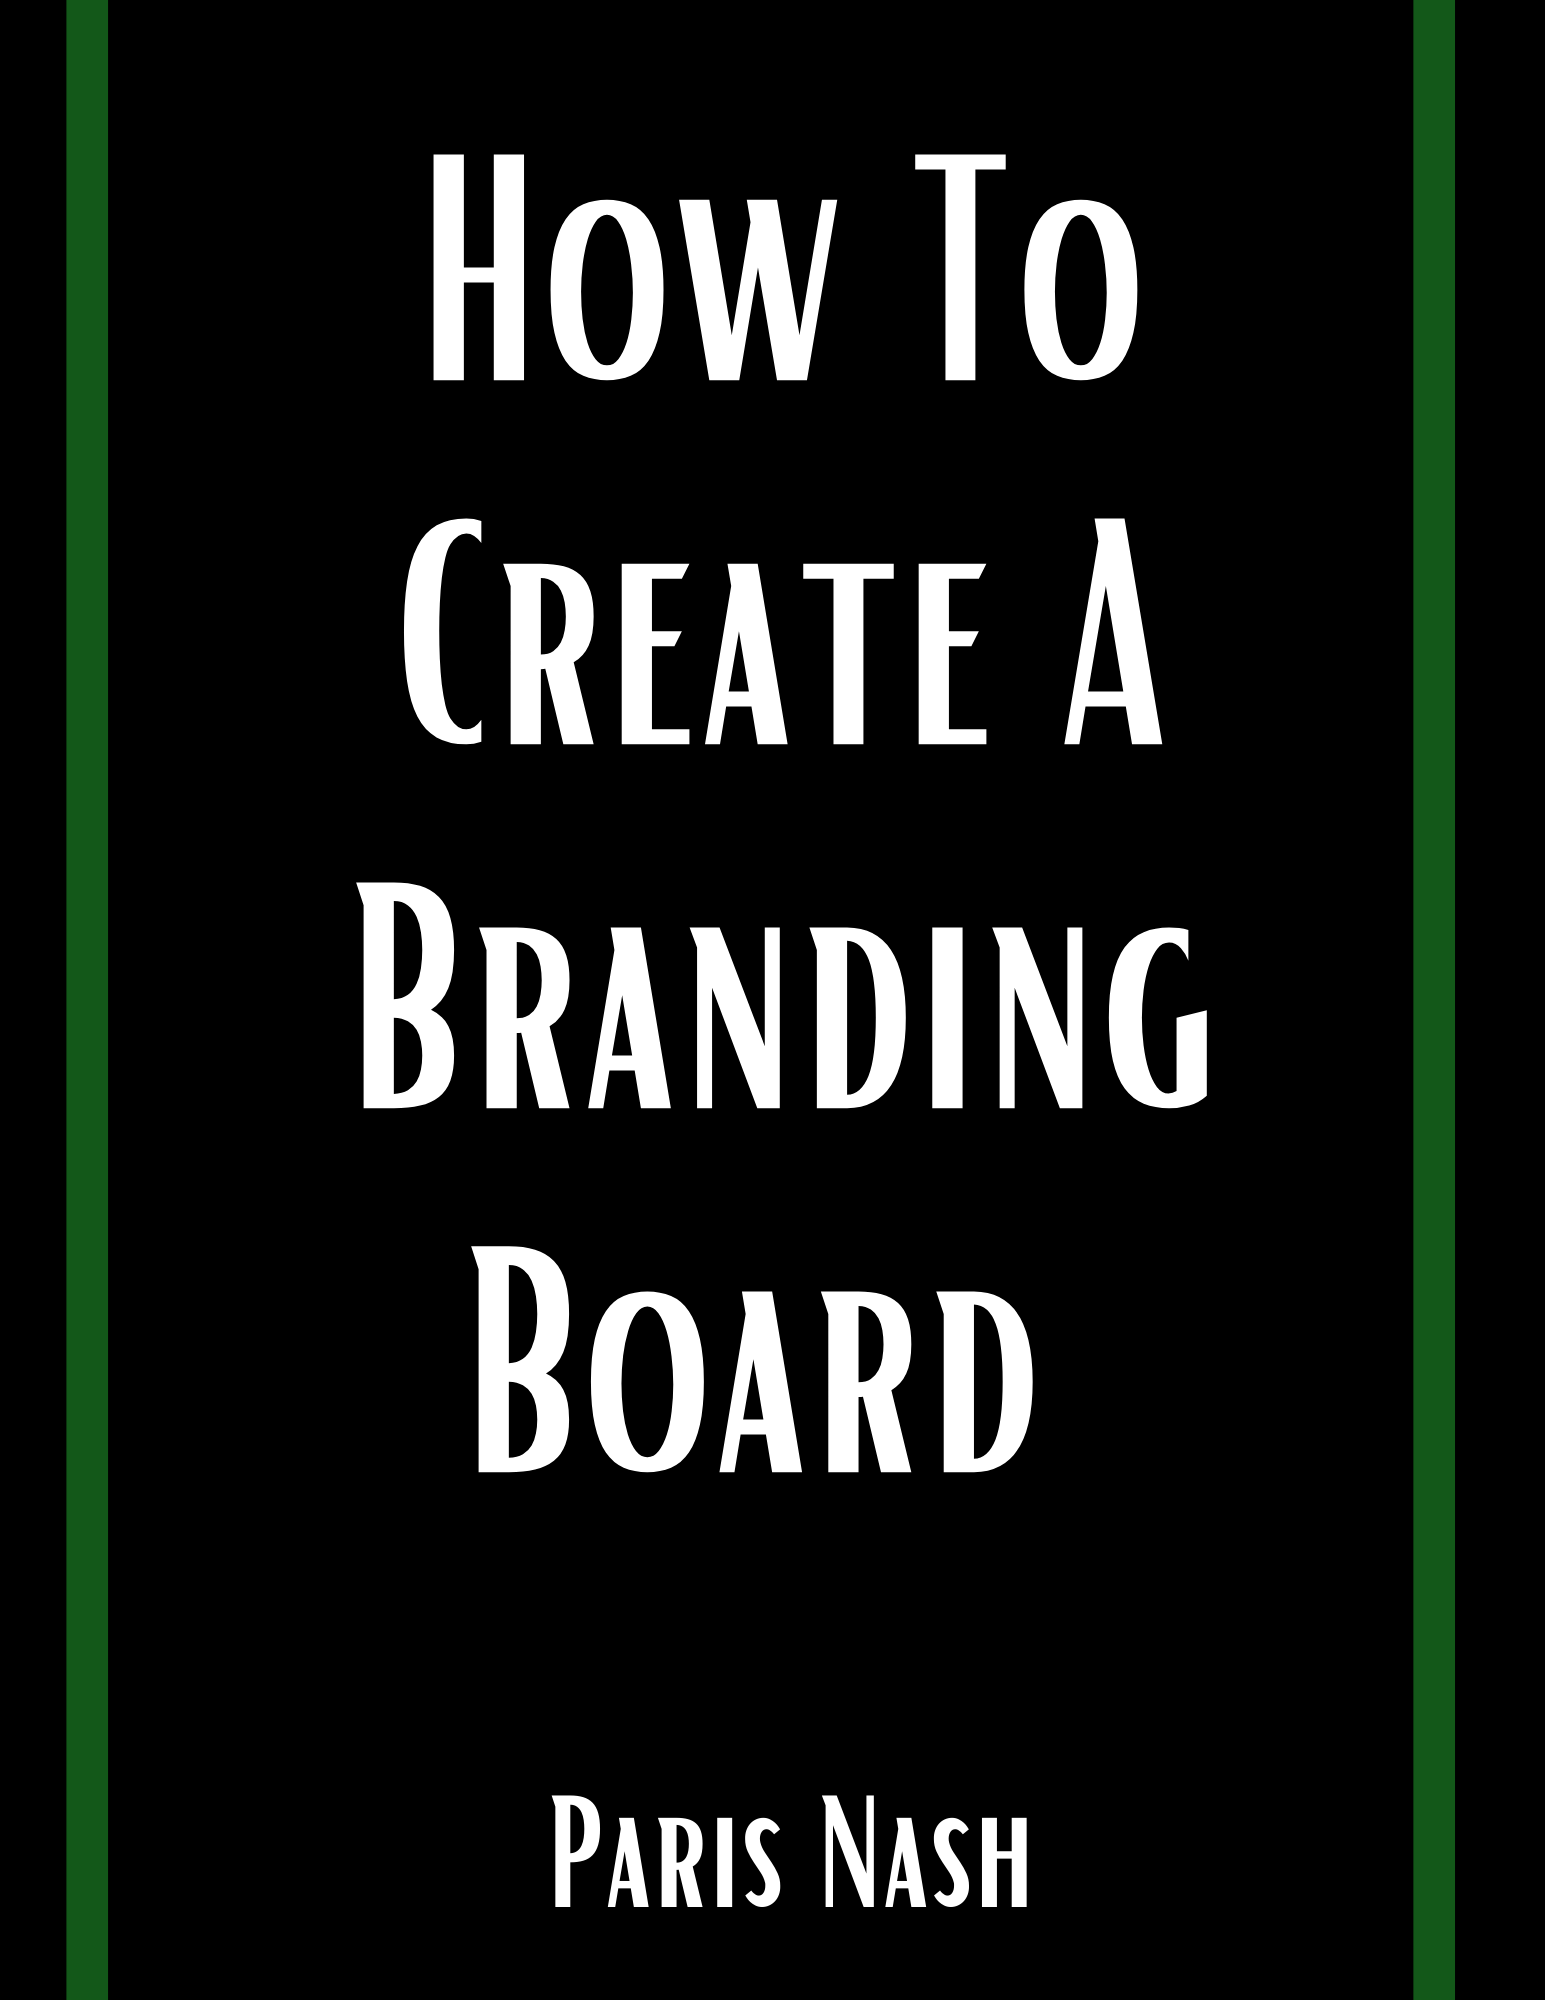 How To Create a Branding Board